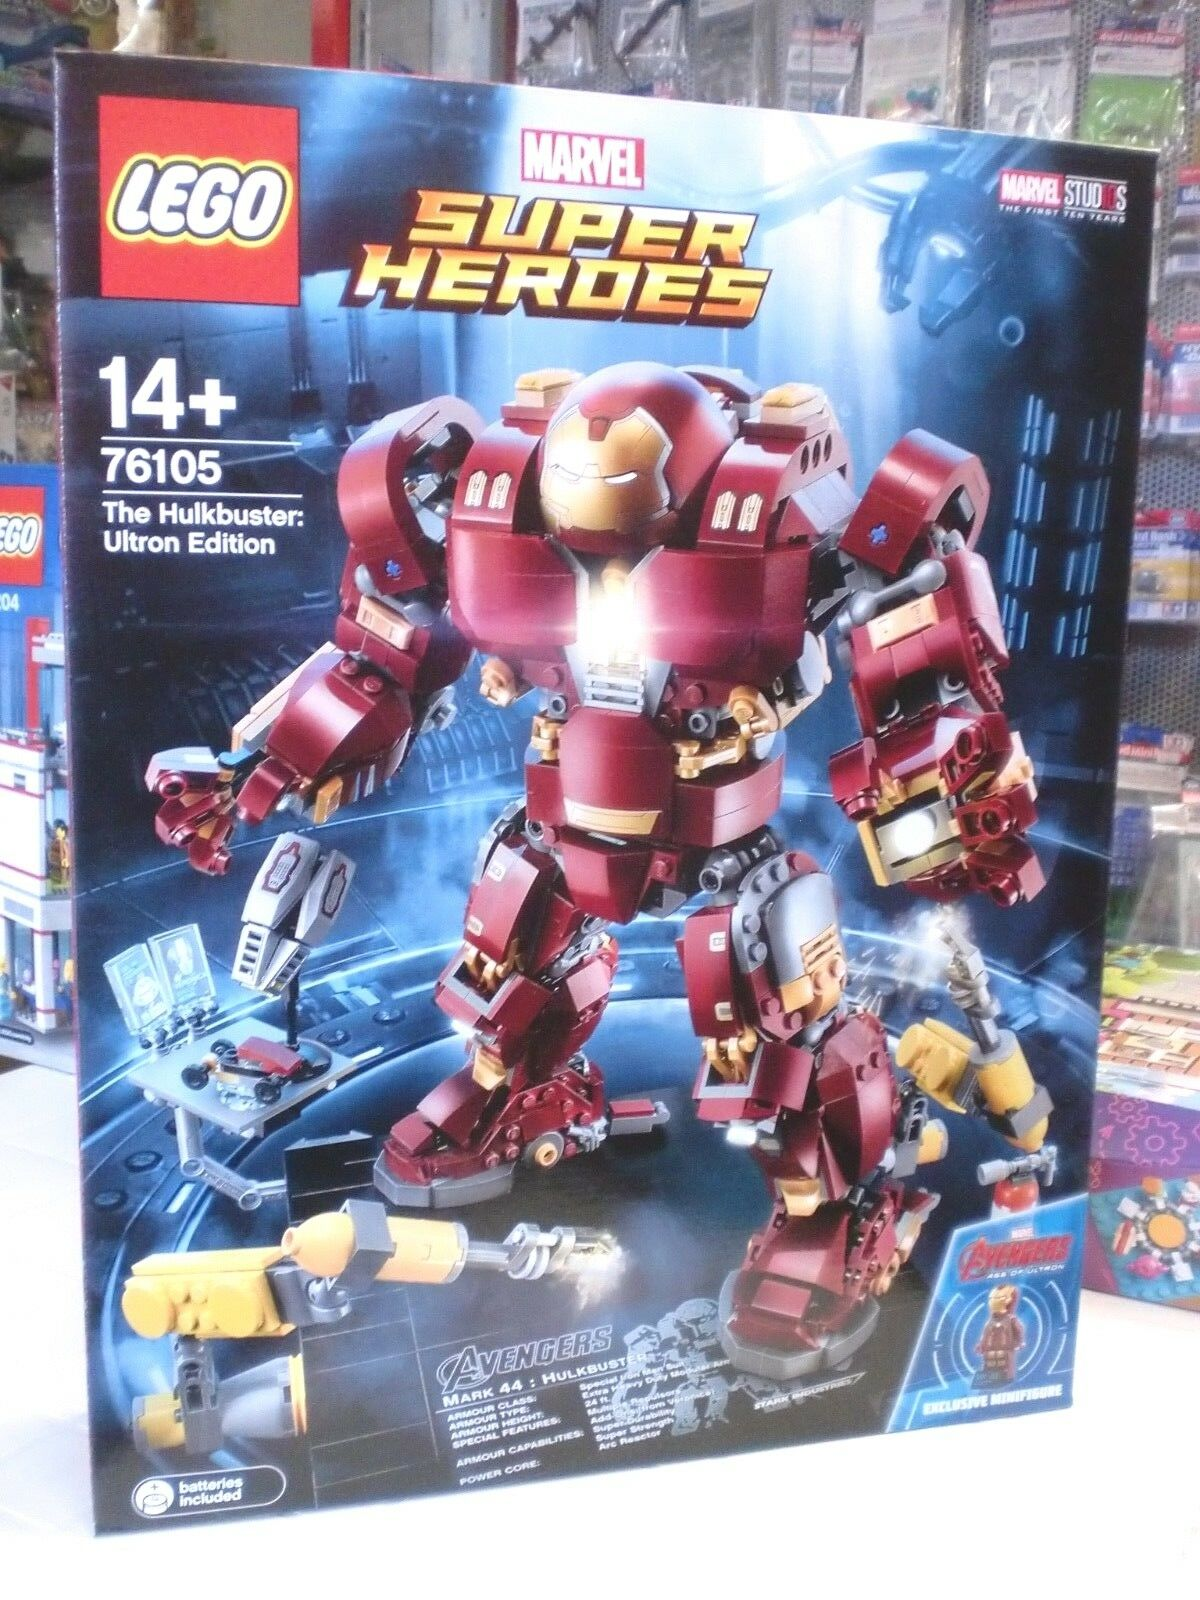 LEGO 76105 - THE HULKBUSTER ULTRON EDITION EDITION EDITION - SERIE SUPER HEROES cada44